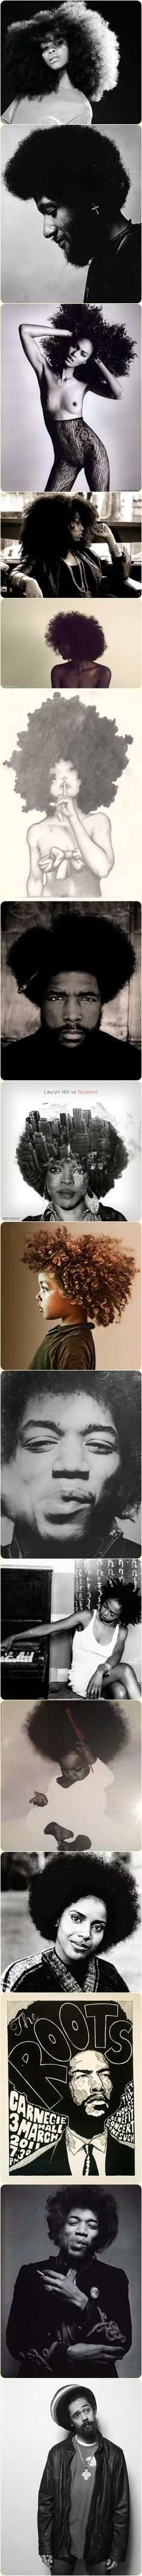 Welcome To The World Afro! Badu Hair The Brown Truth's Blog: www.thebrowntruth.wordpress.com